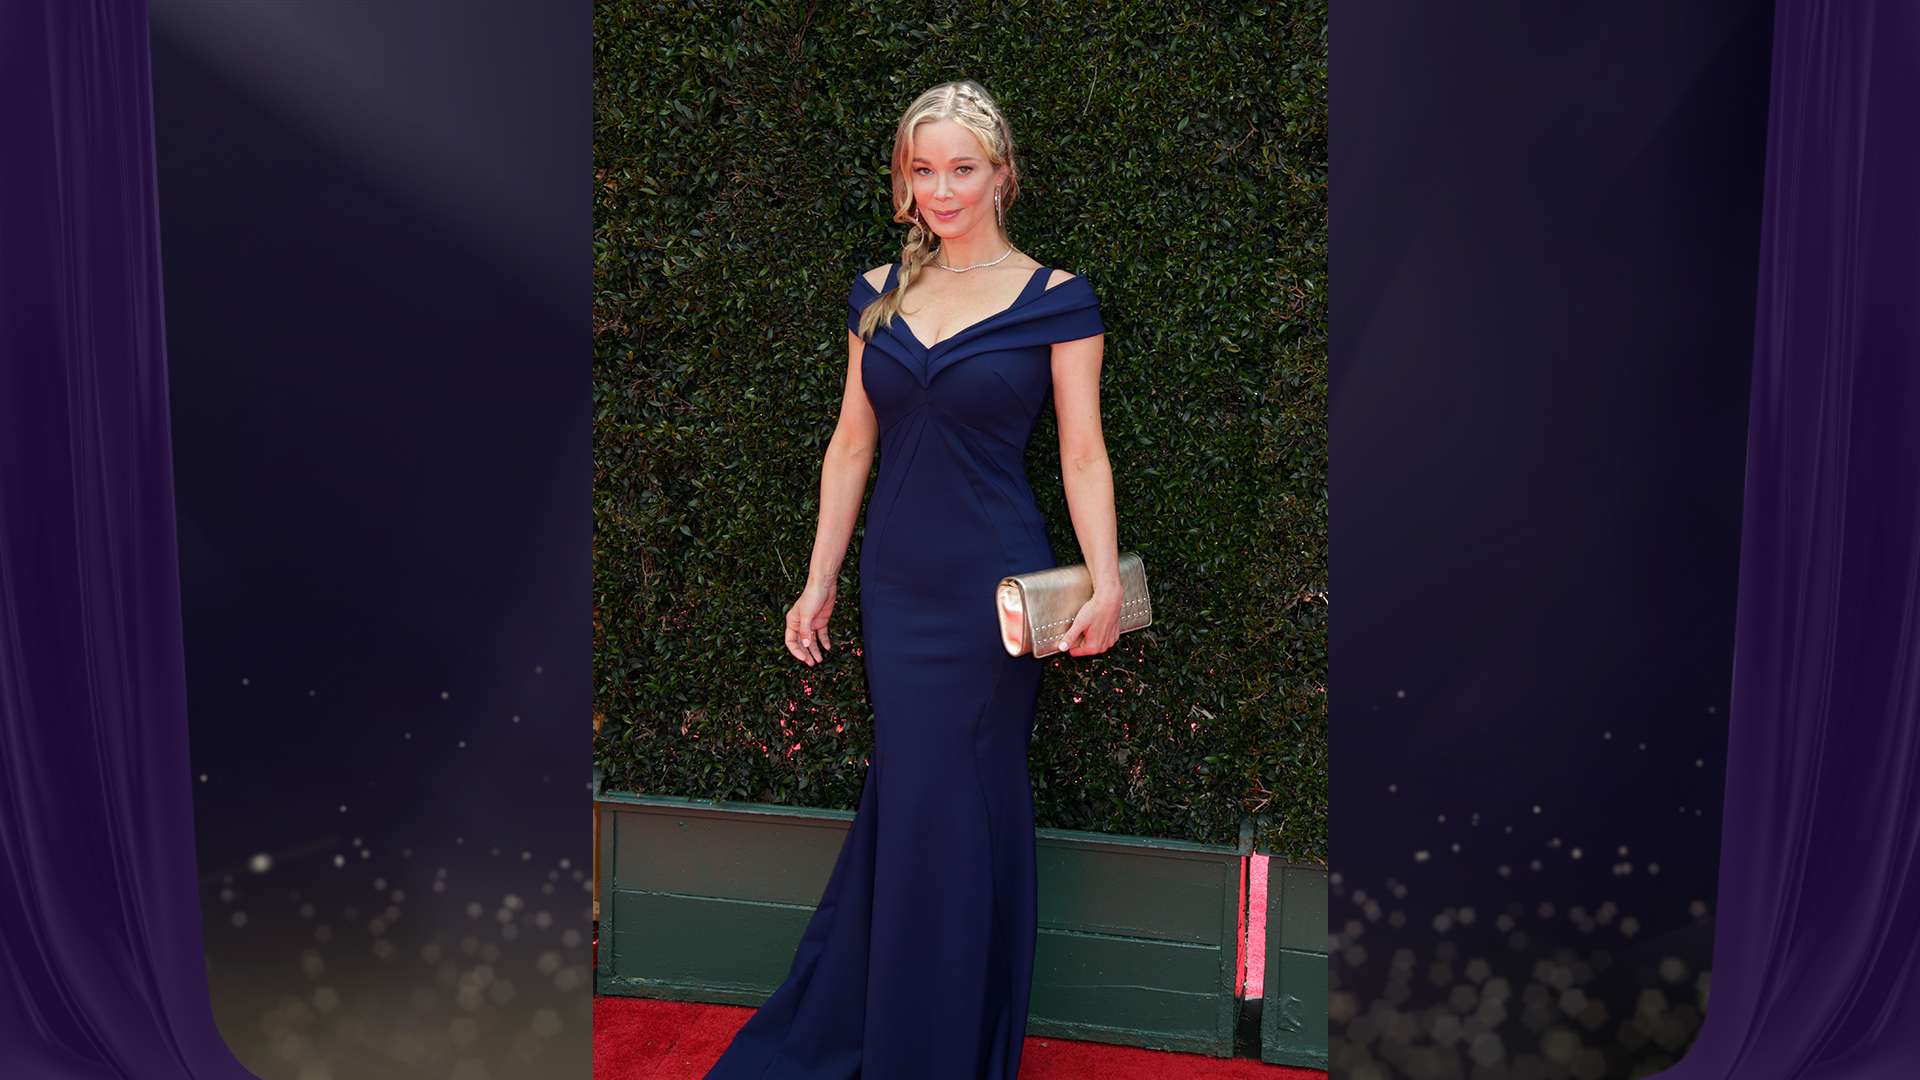 Jennifer Gareis from The Bold and the Beautiful stuns in a navy blue off-the-shoulder dress and gold clutch.